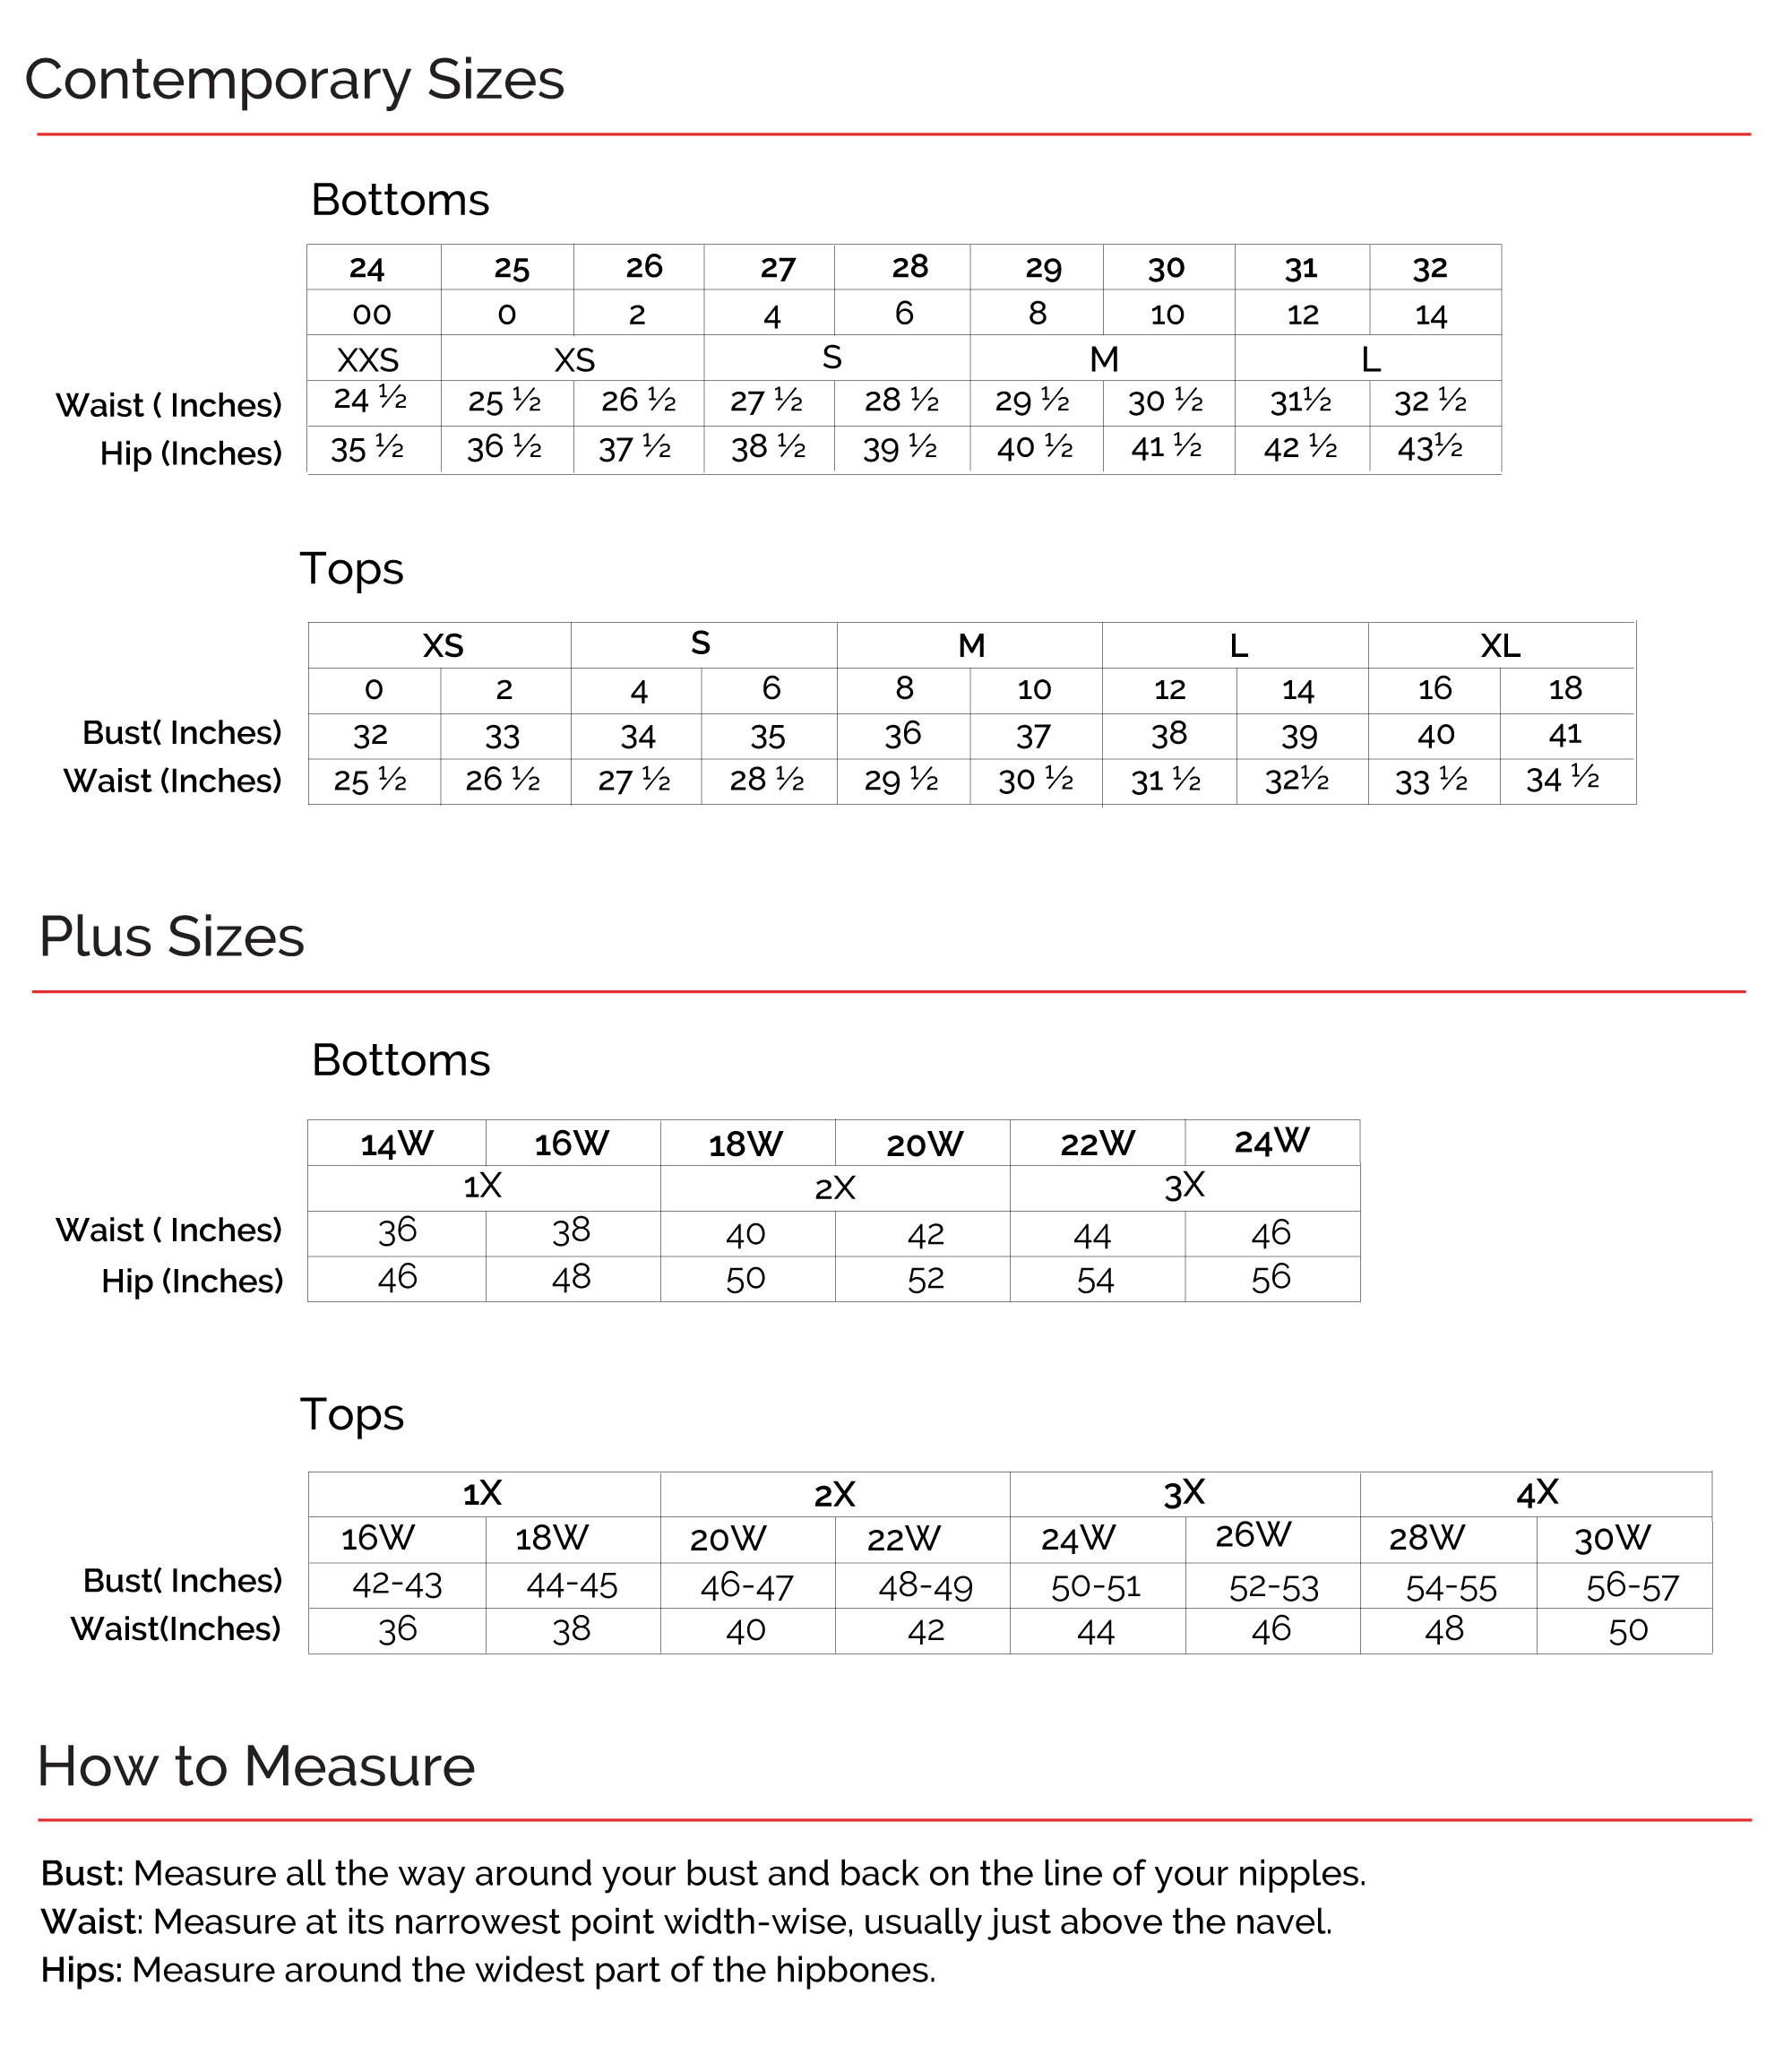 Shop Skinnygirl size chart for tops and bottom, and for  contemporary and plus sizes